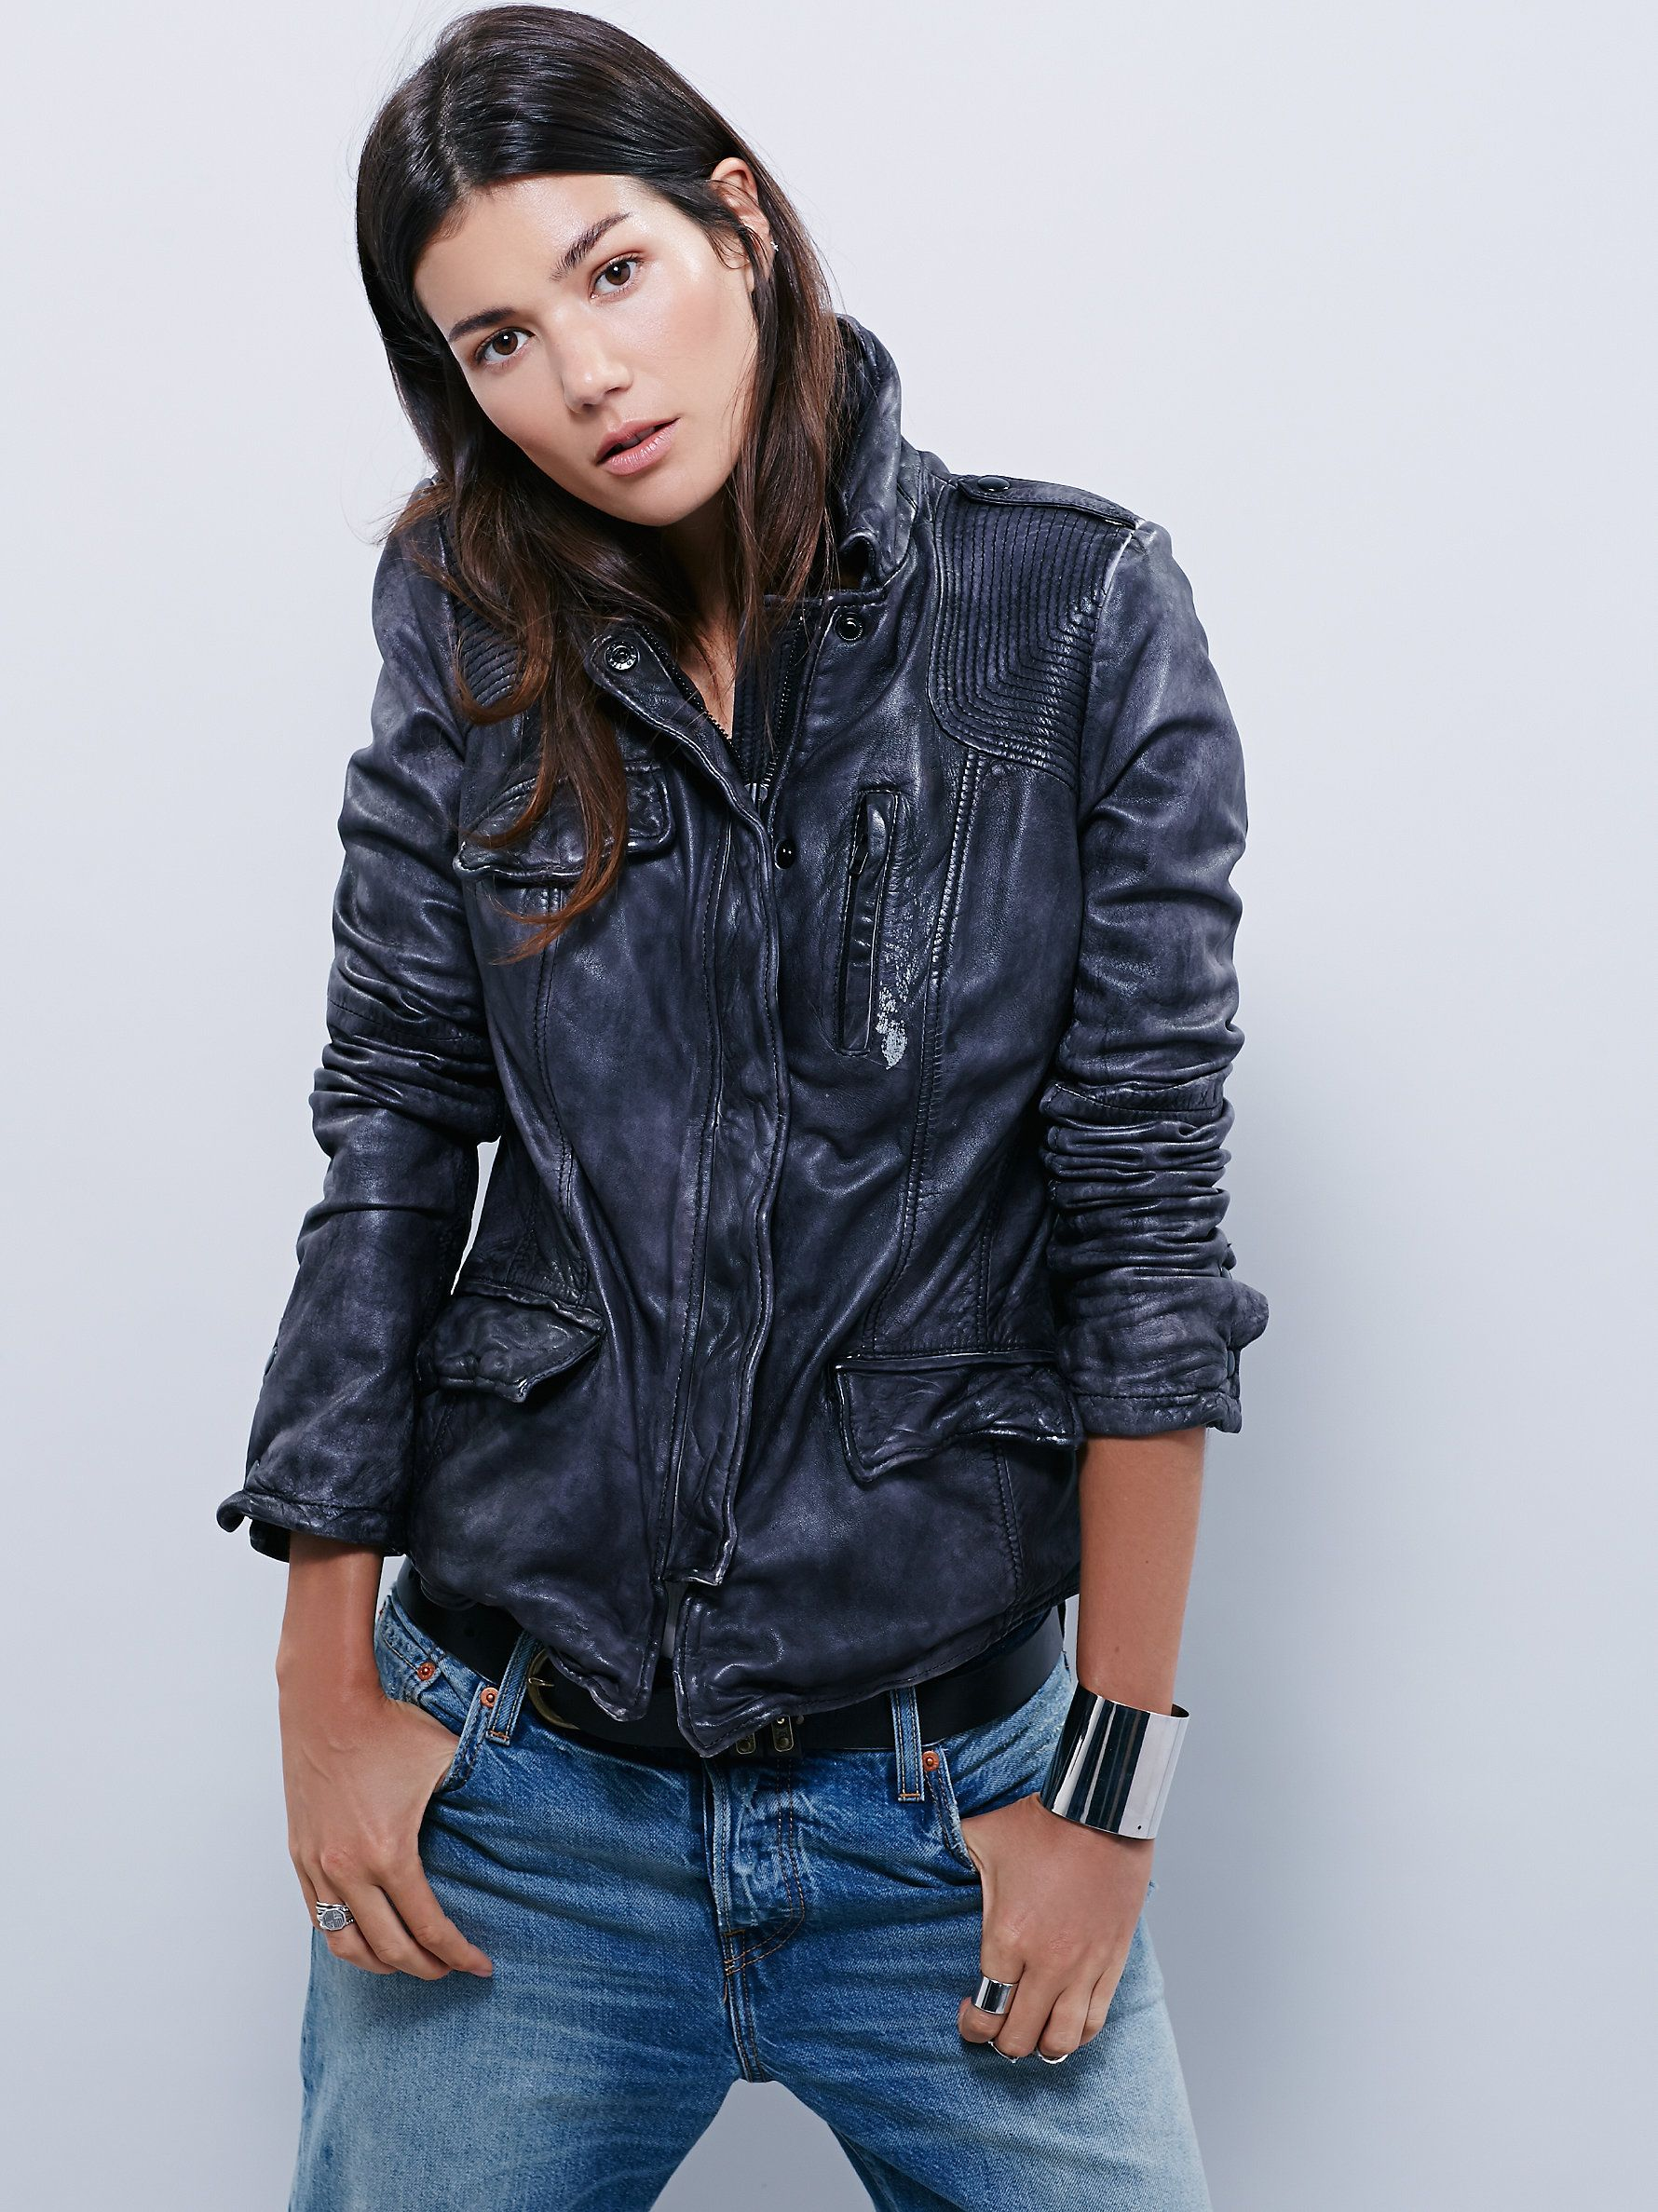 Rumpled Leather Blazer Leather Jacket With Hood Distressed Leather Jacket Leather Blazer